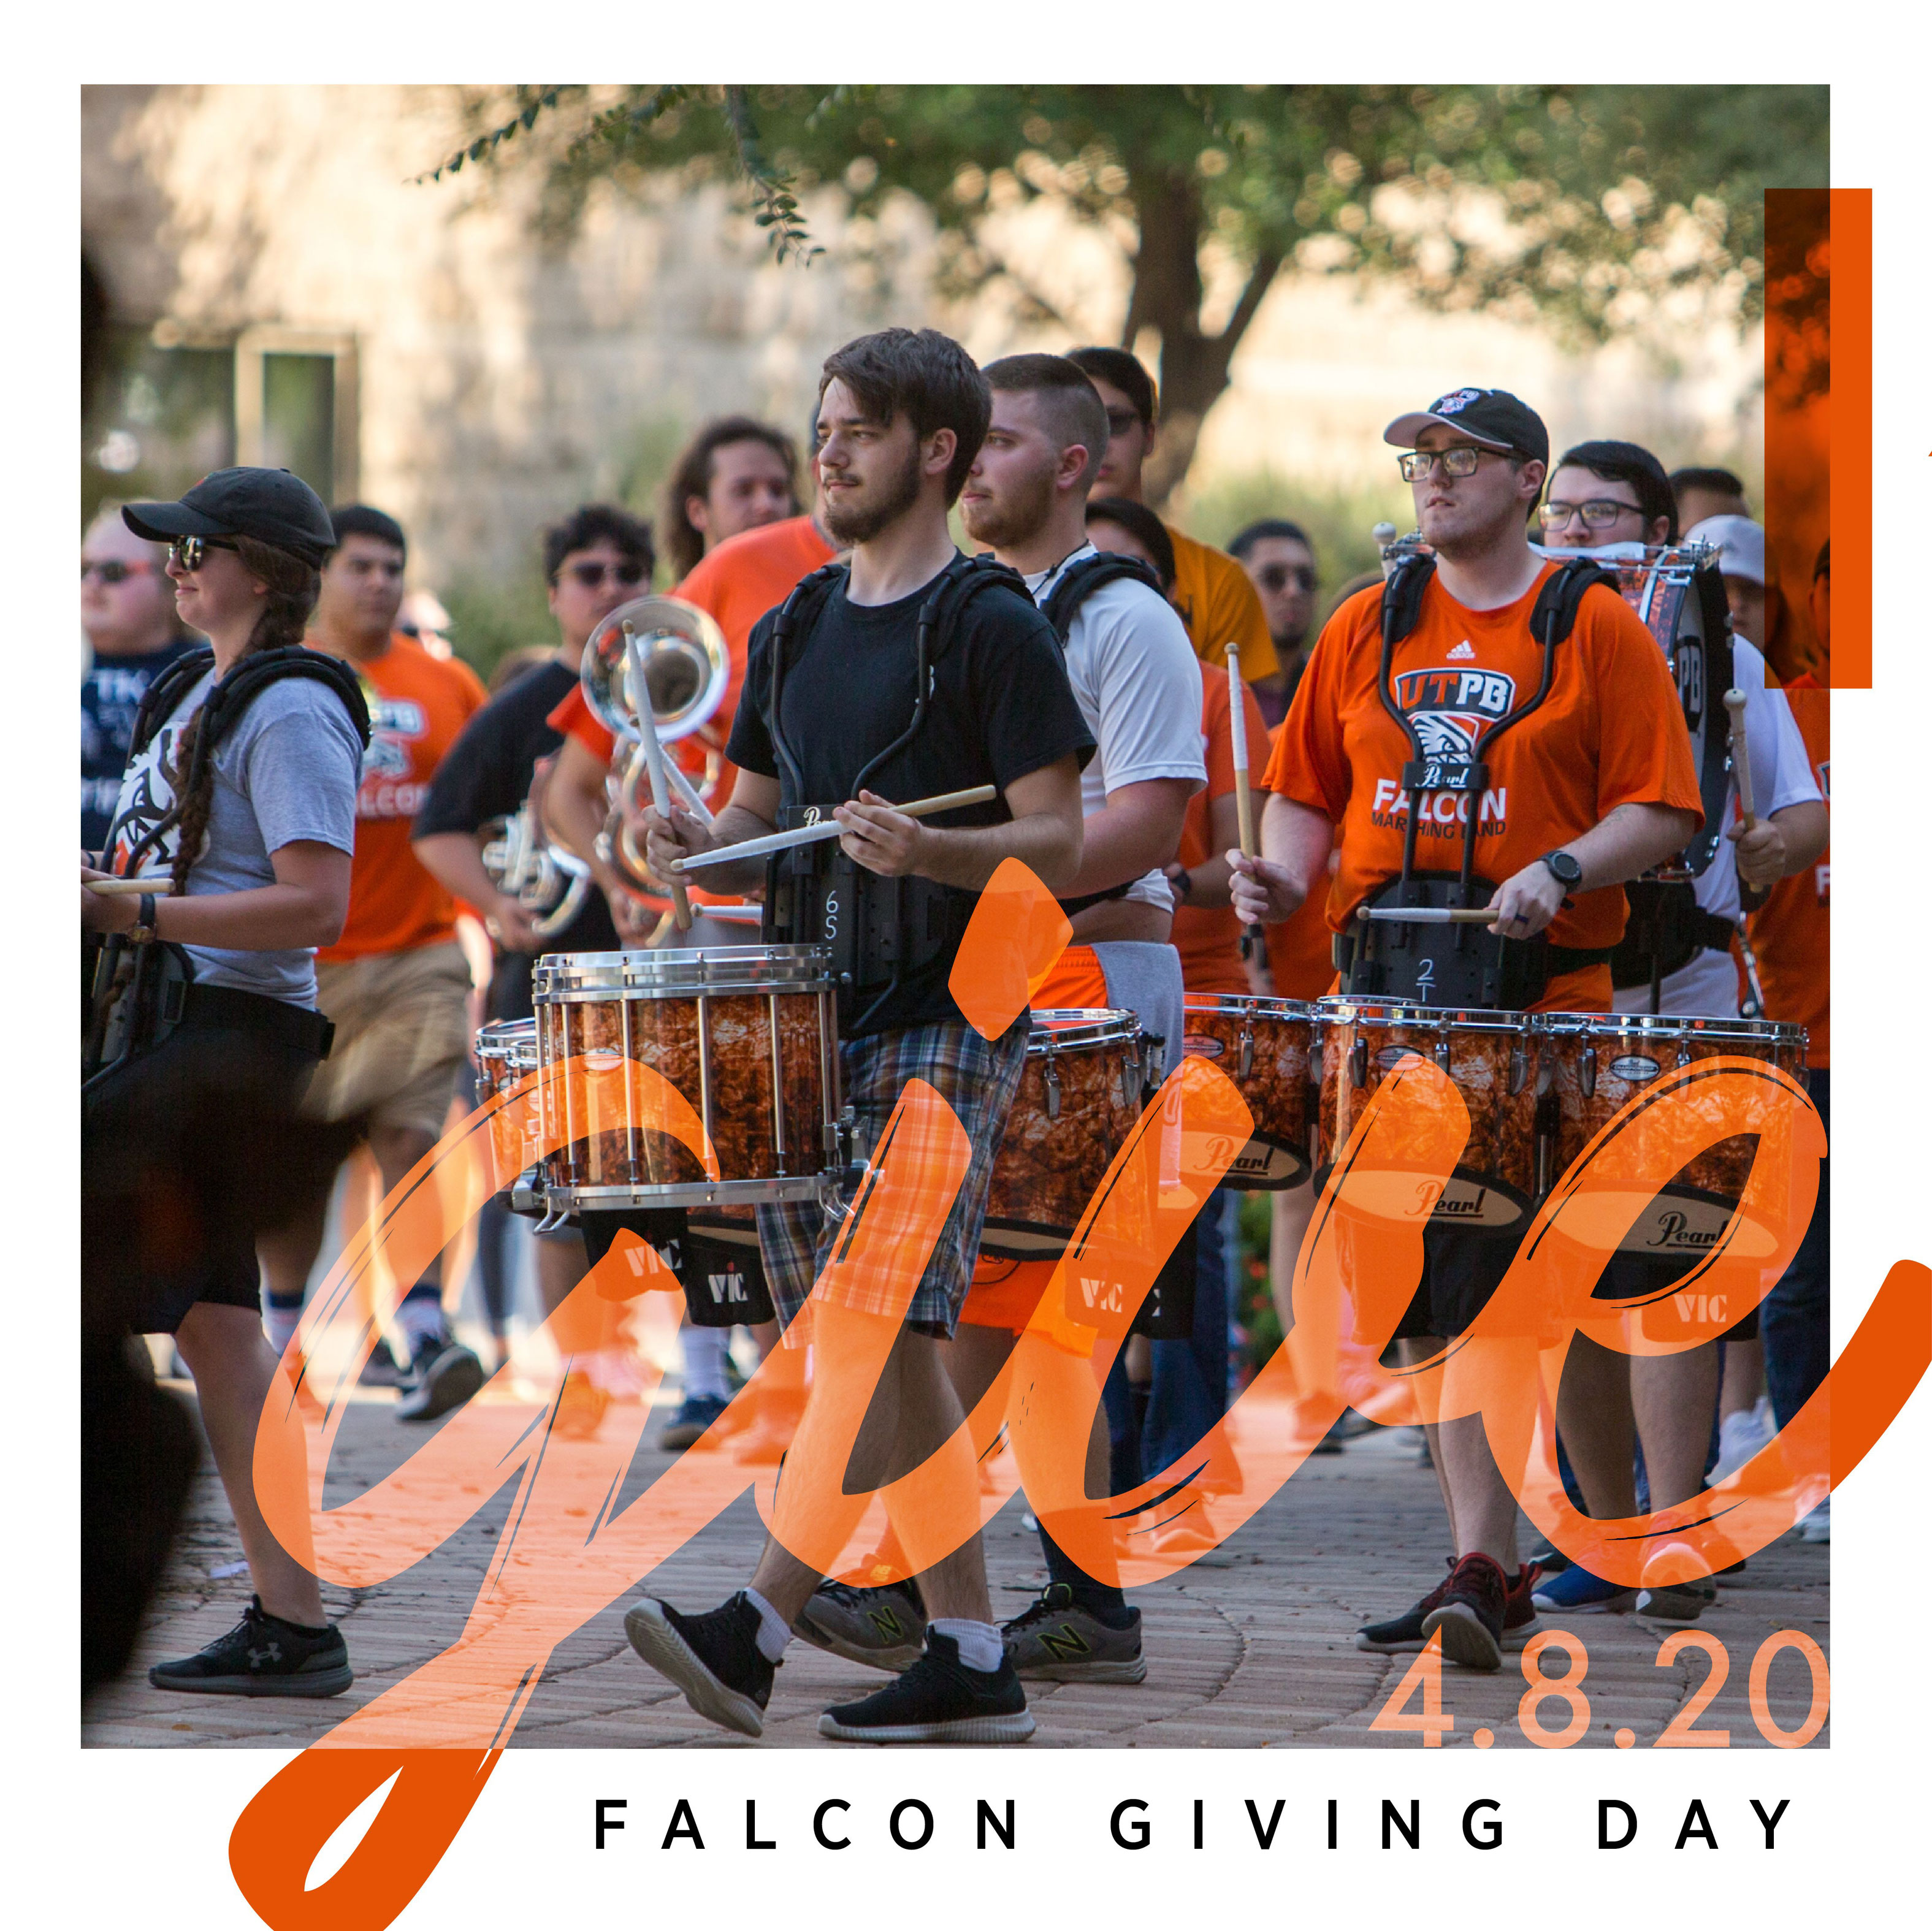 halcon-giving-day-graphic